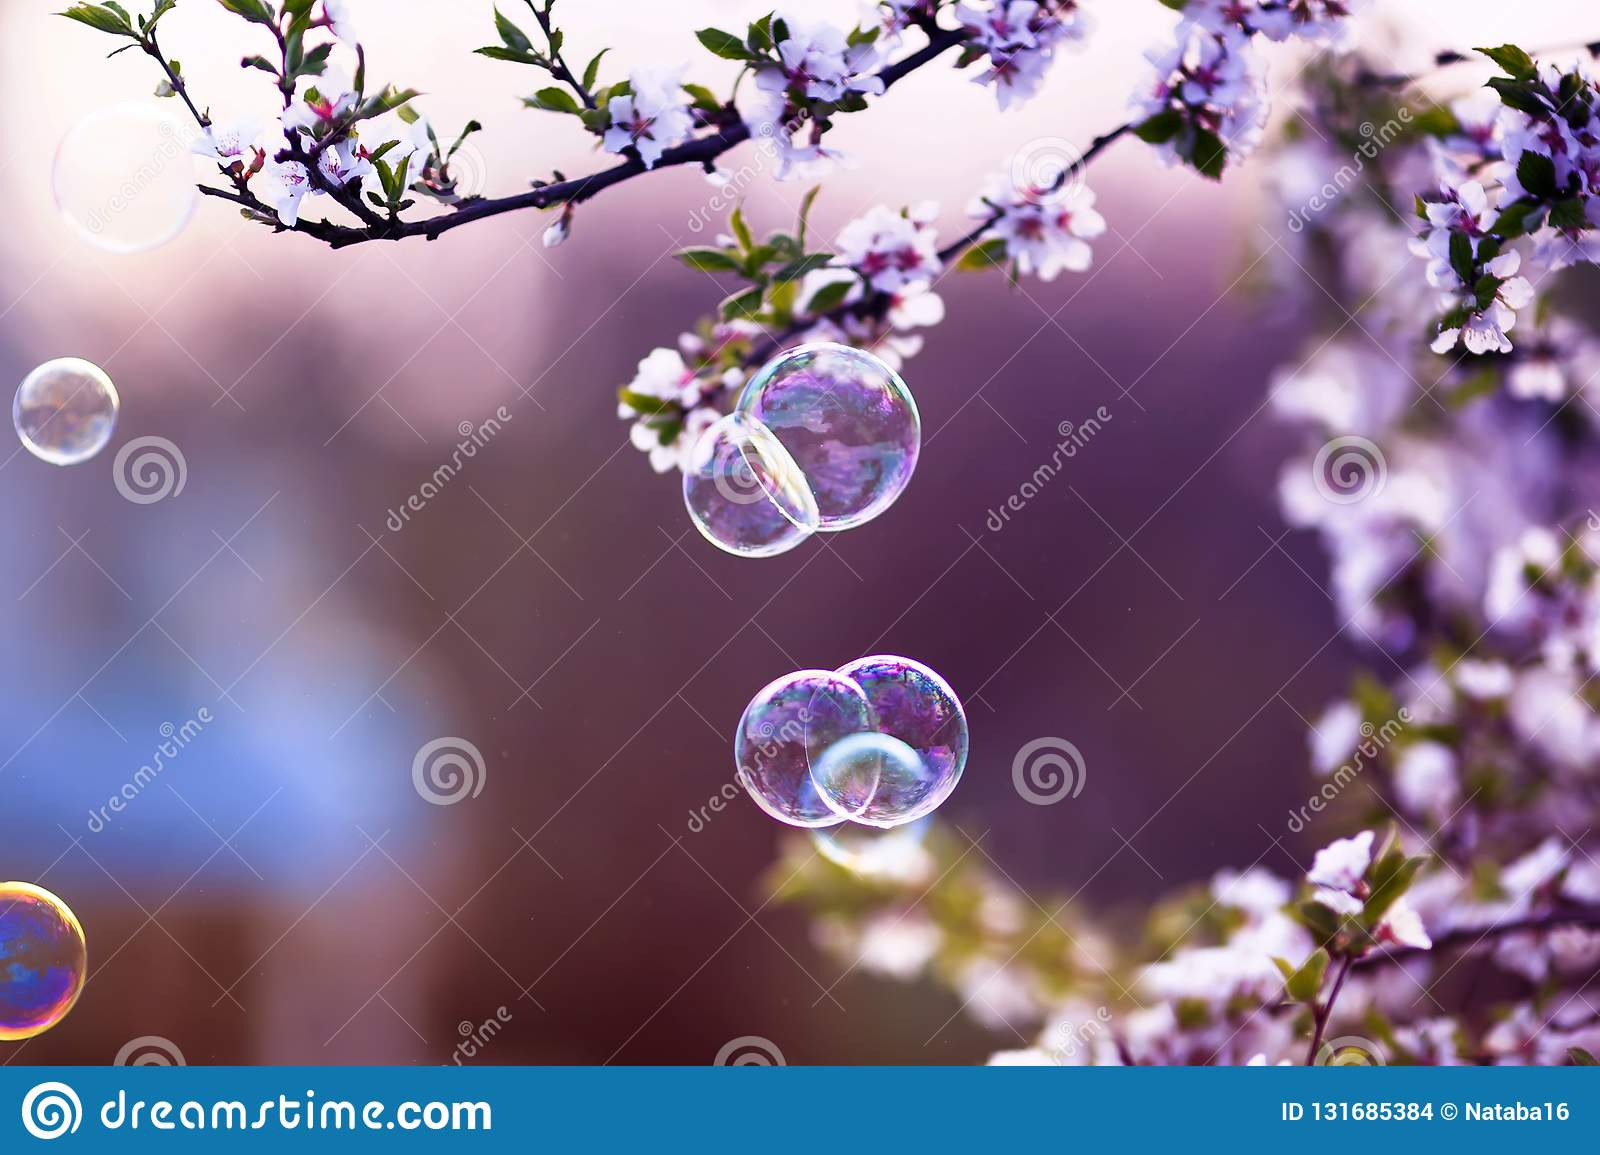 festive background with flying soap bubbles shimmering in the sun in the spring garden above the cherry blossom branch